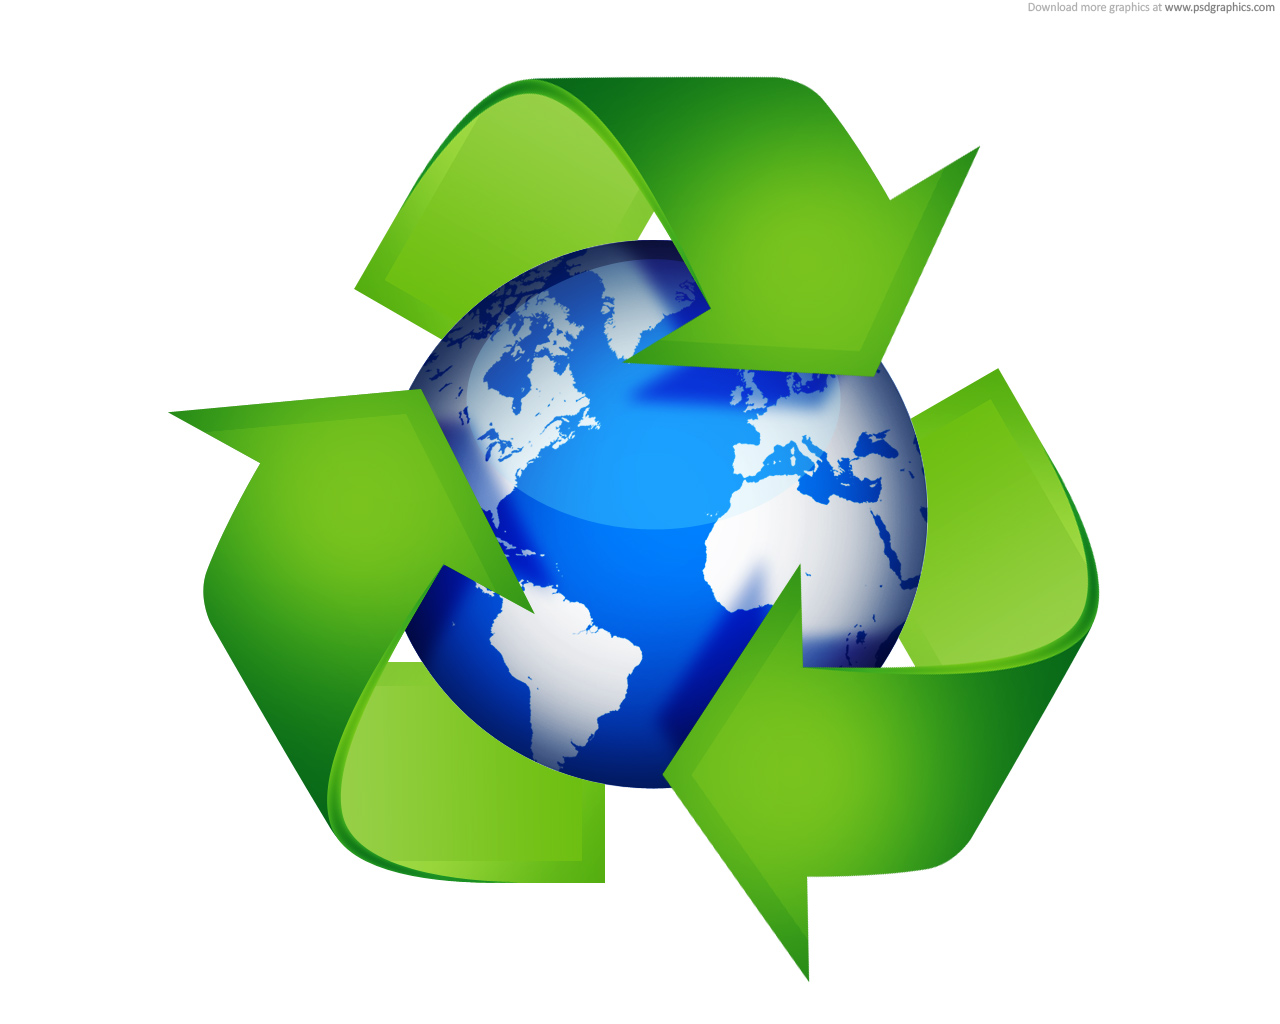 Taken From: http://www.psdgraphics.com/file/green-recycling-icon.jpg